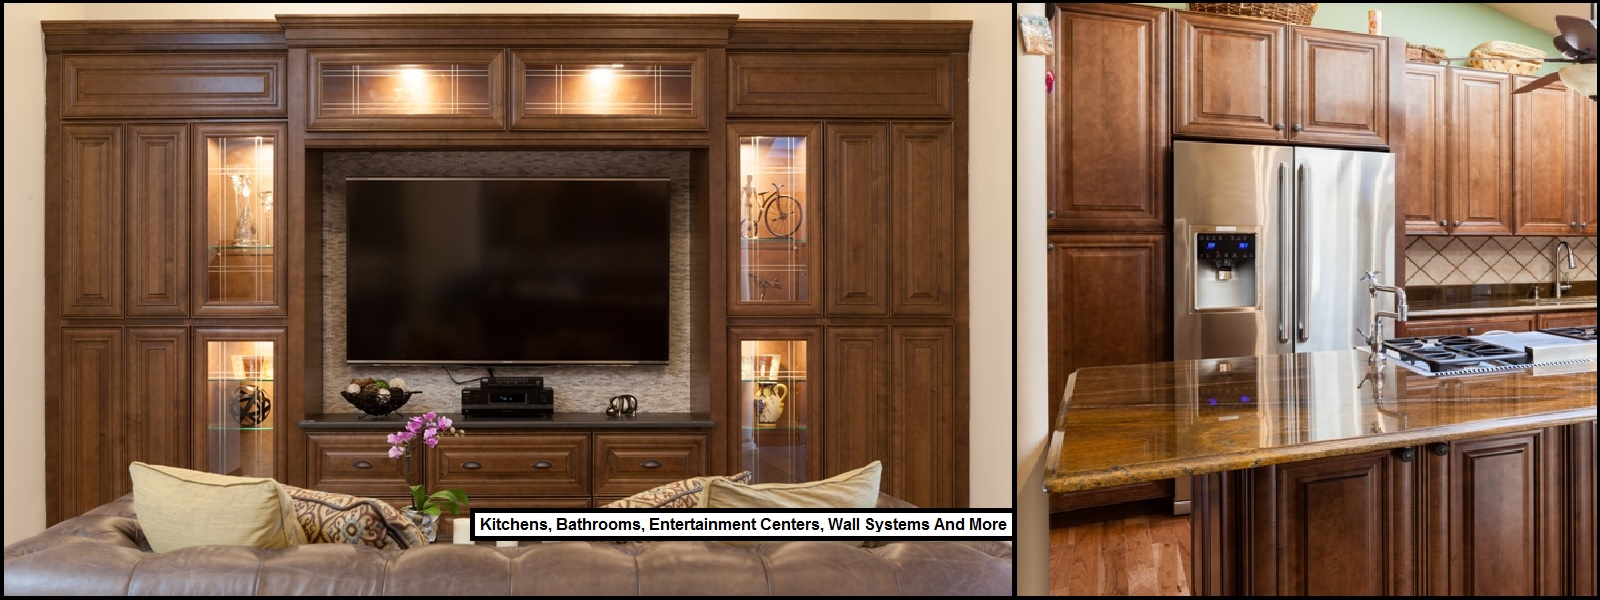 Pelleco Scottsdale Kitchens Bathrooms Entertainment Centers Wall Systems